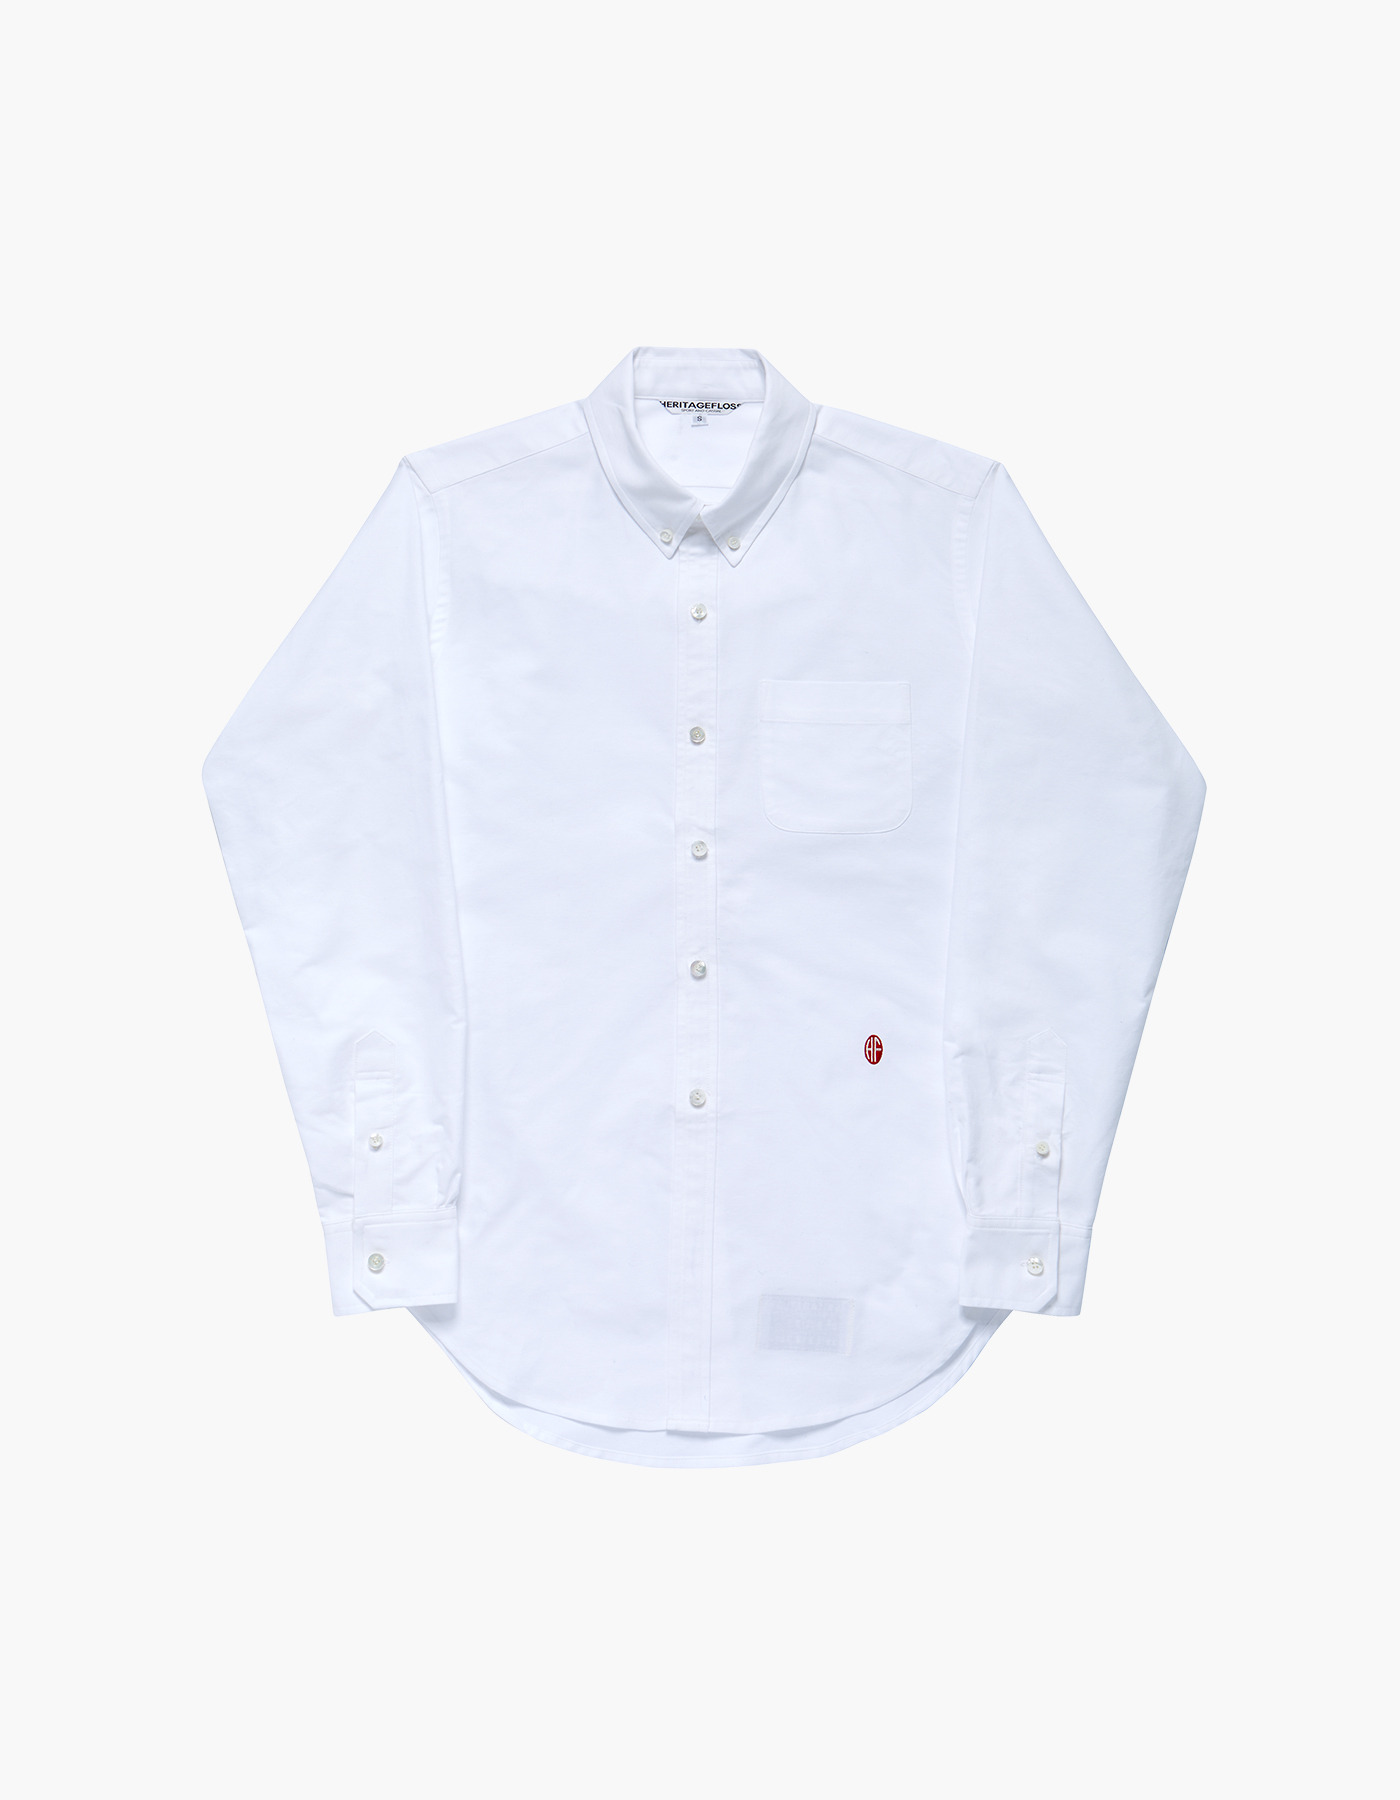 NON-WASHED OXFORD SPORT SHIRTS / WHITE